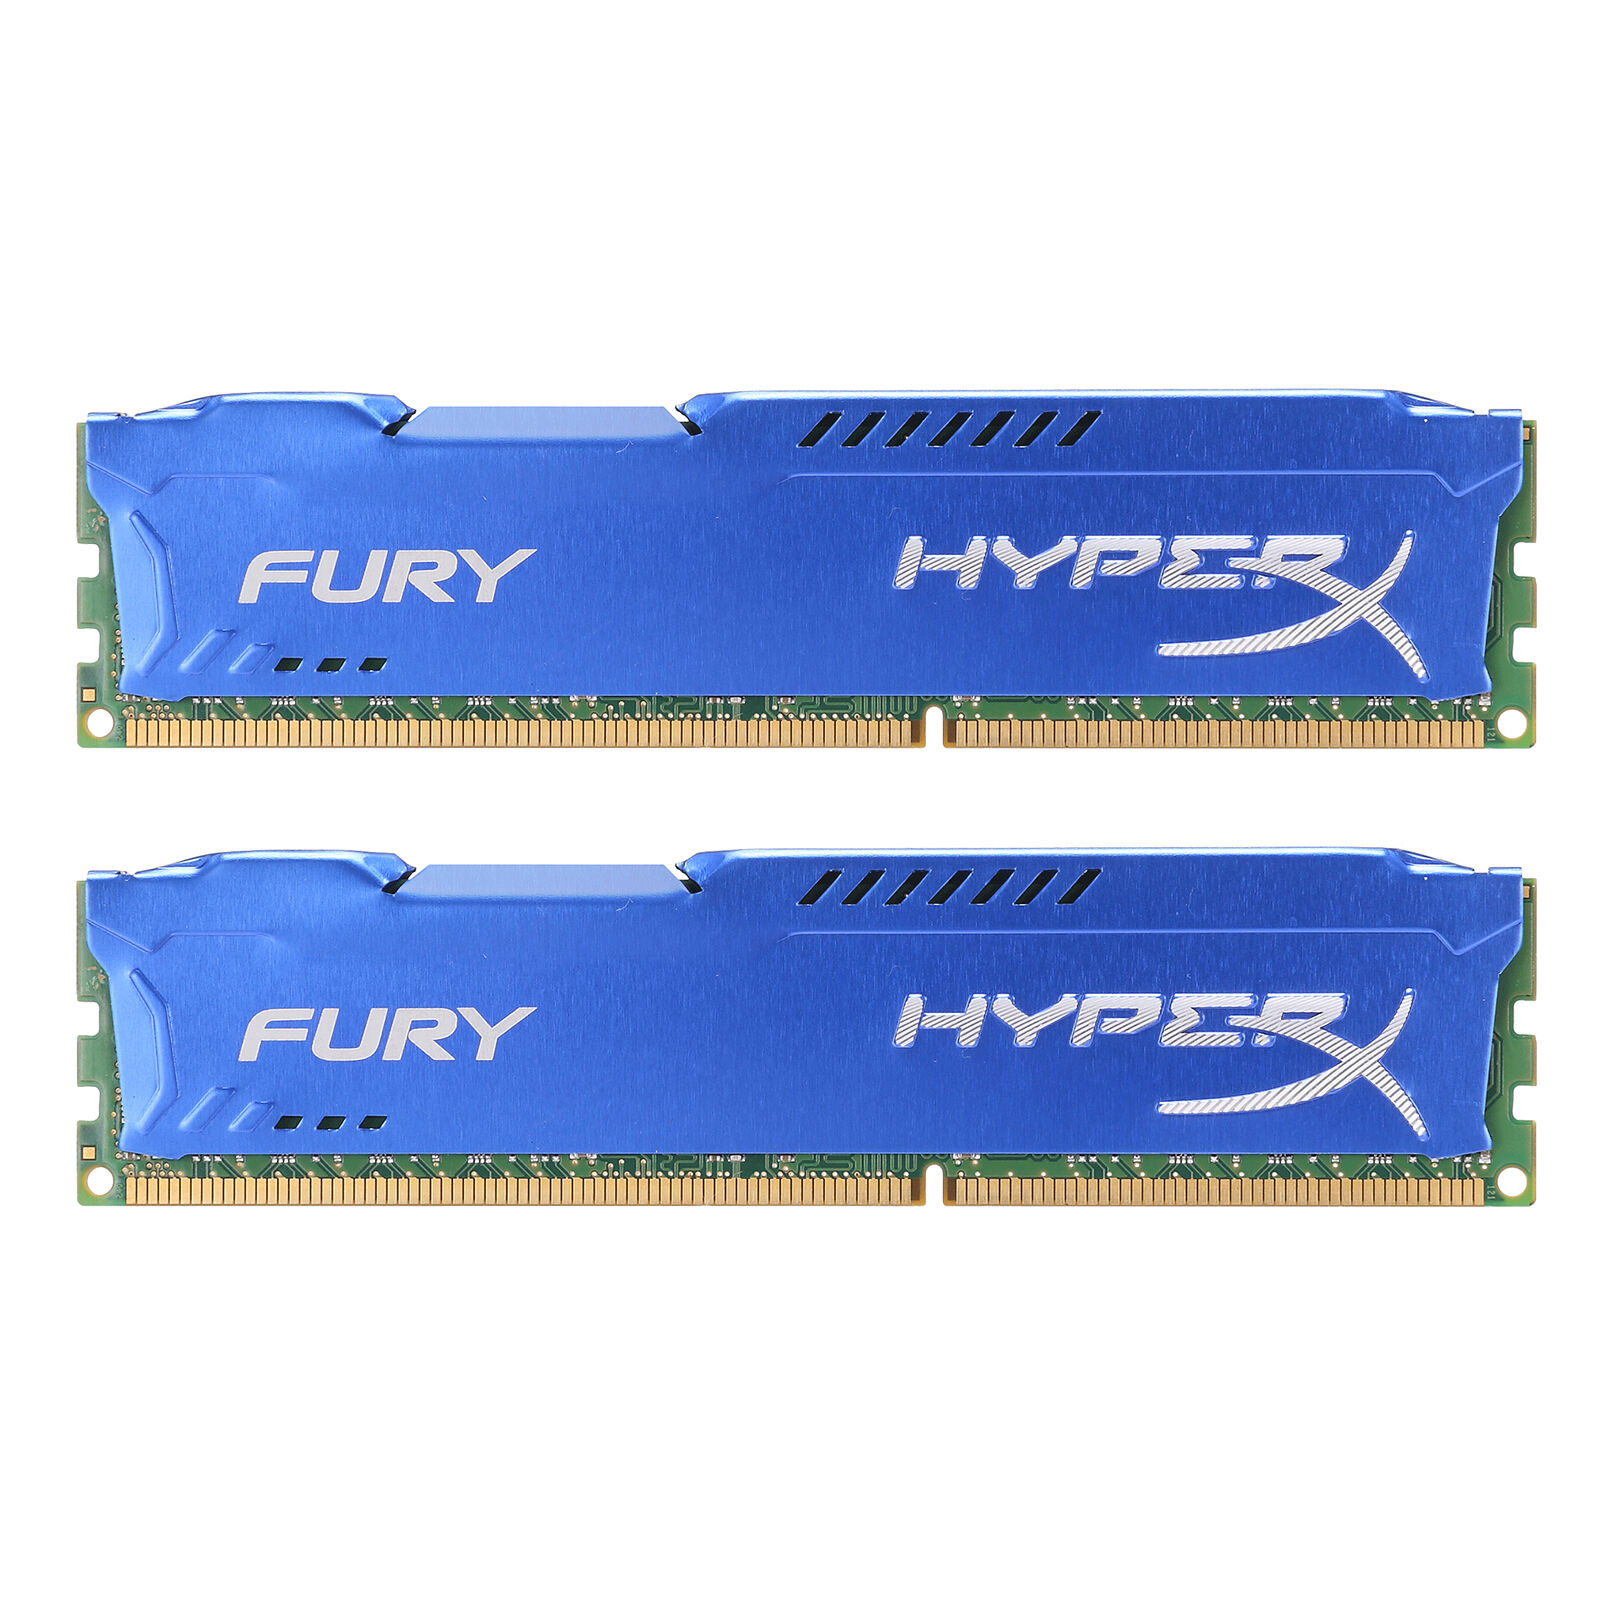 Desktop 1600MHz PC3-12800 DIMM RAM For Kingston HyperX FURY ca 2x8GB DDR3 16GB